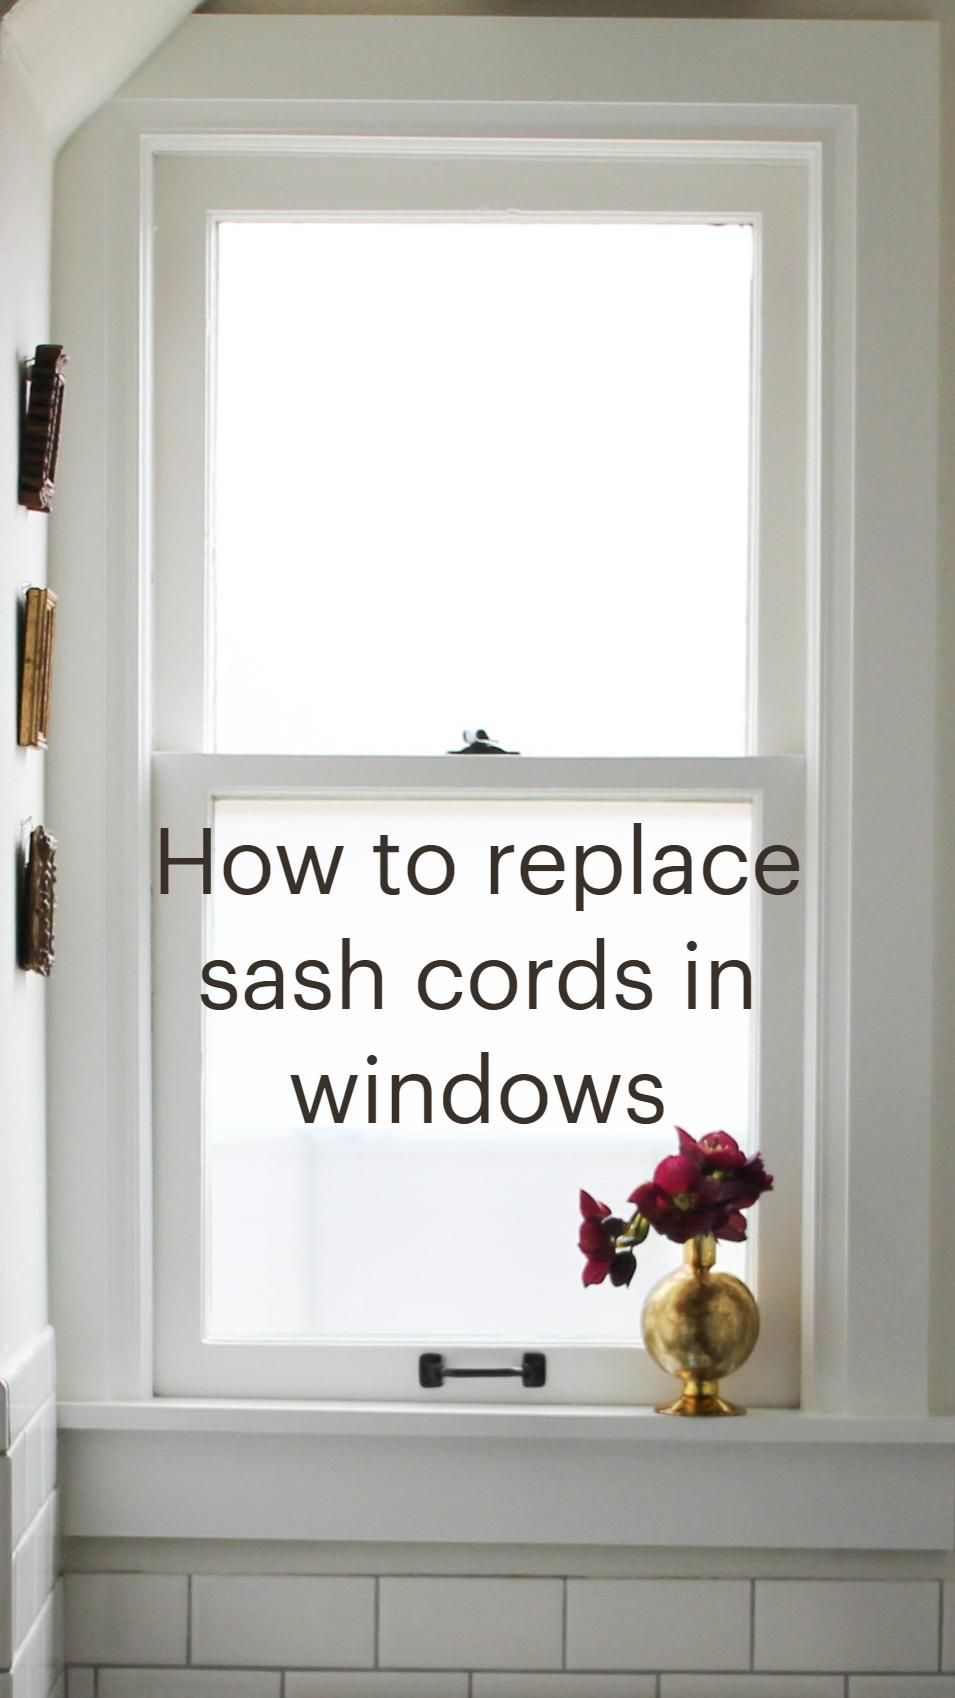 How to replace sash cords in windows